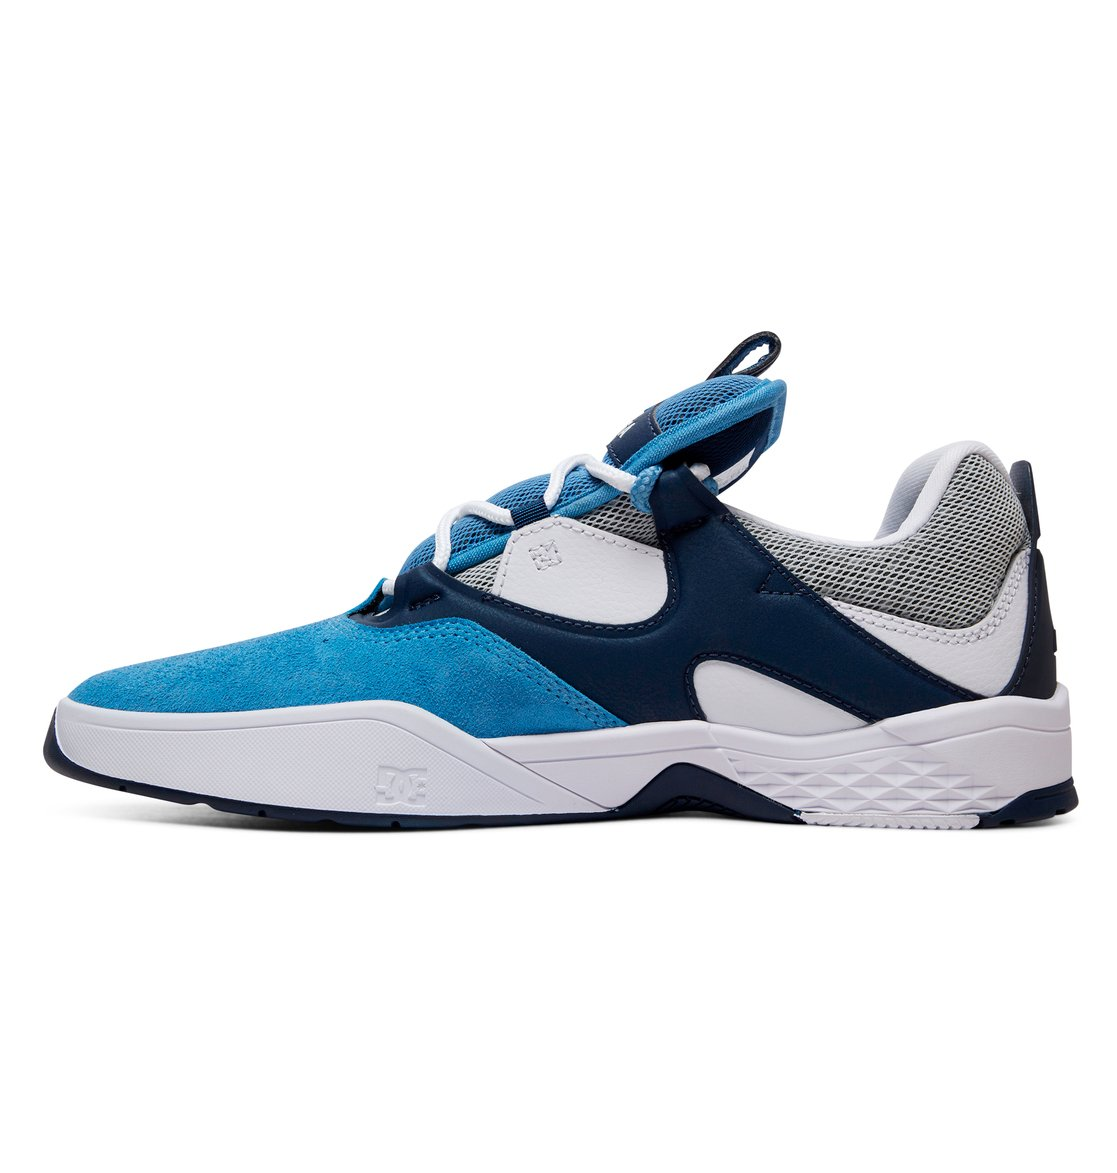 ea5fbbd09983 2 Kalis S Skate Shoes Blue ADYS100470 DC Shoes